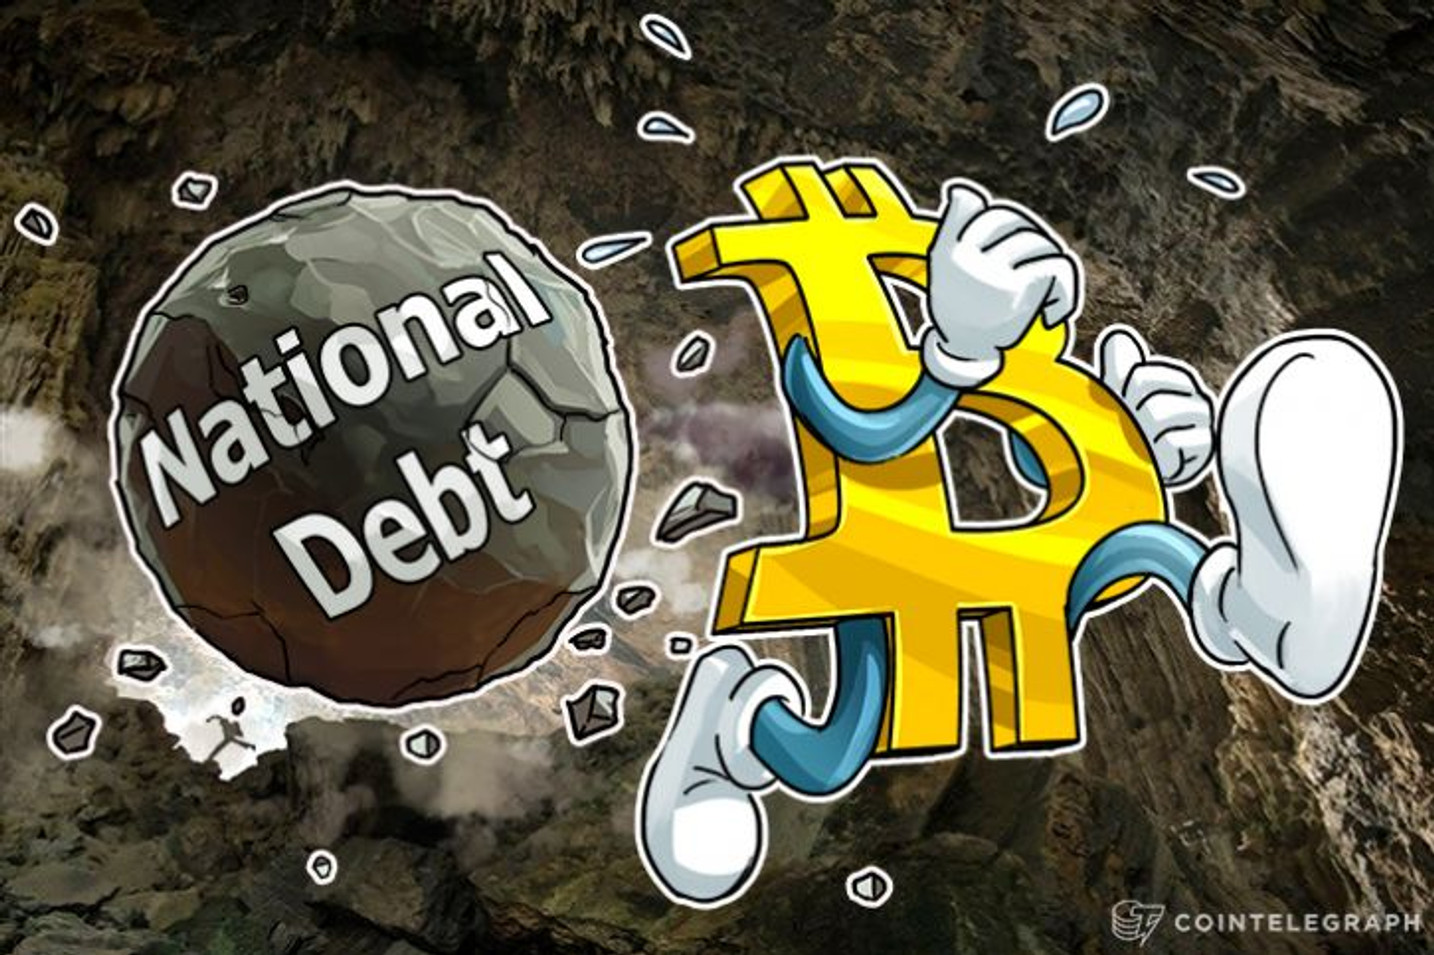 Bitcoin Bubble? US National Debt Passes $20 TRILLION For First Time In History